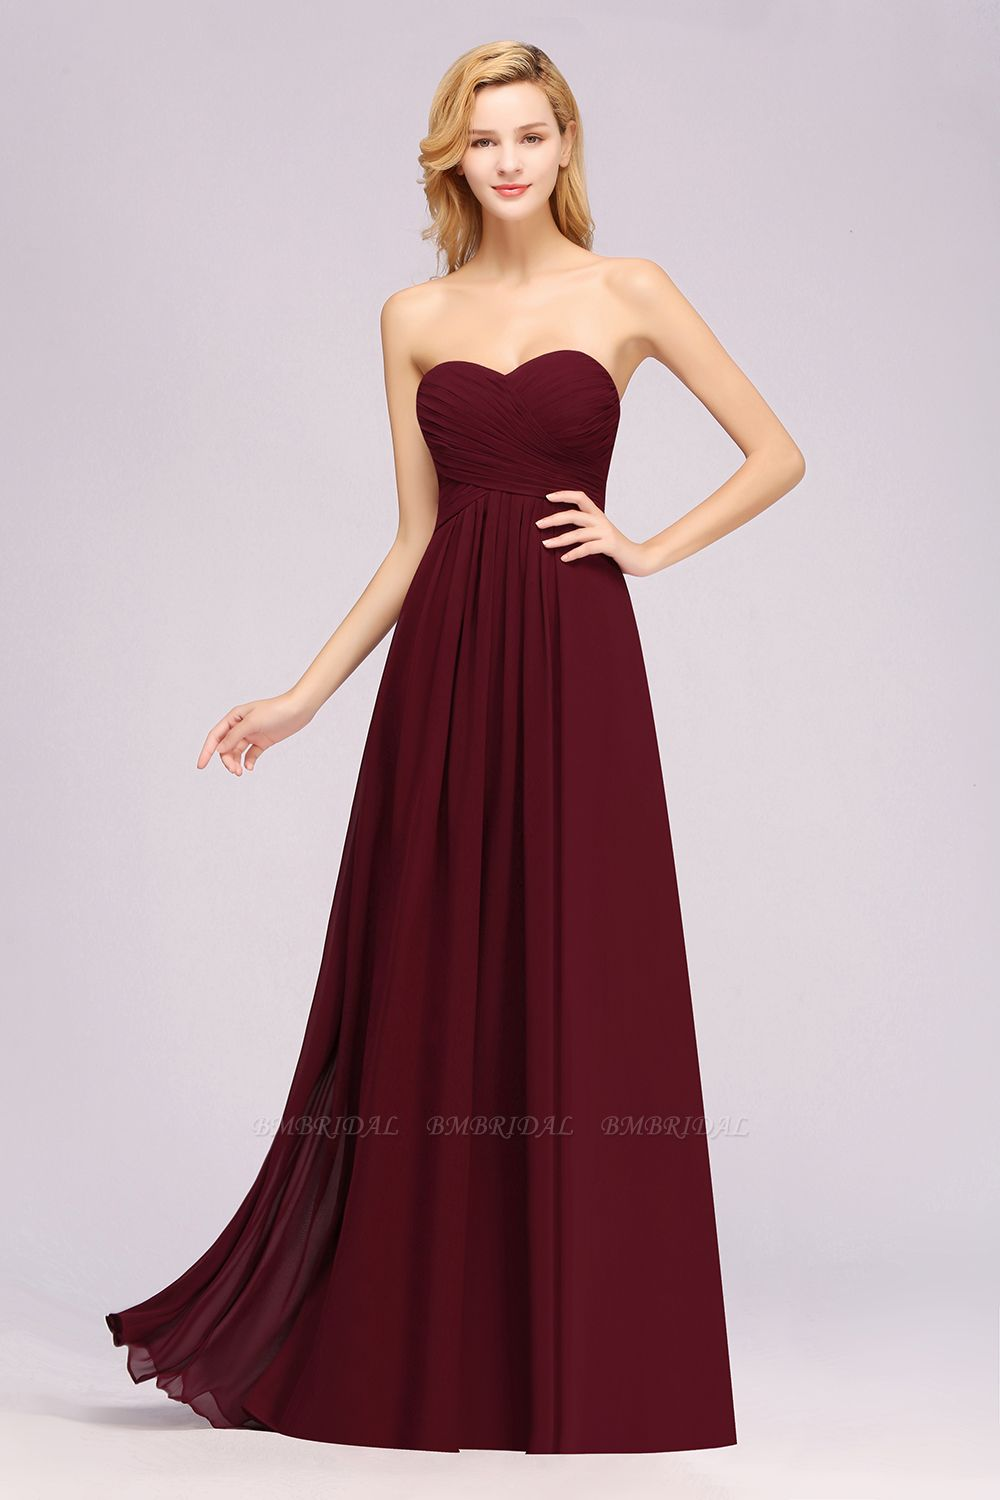 Vintage Sweetheart Long Grape Affordable Bridesmaid Dresses Online